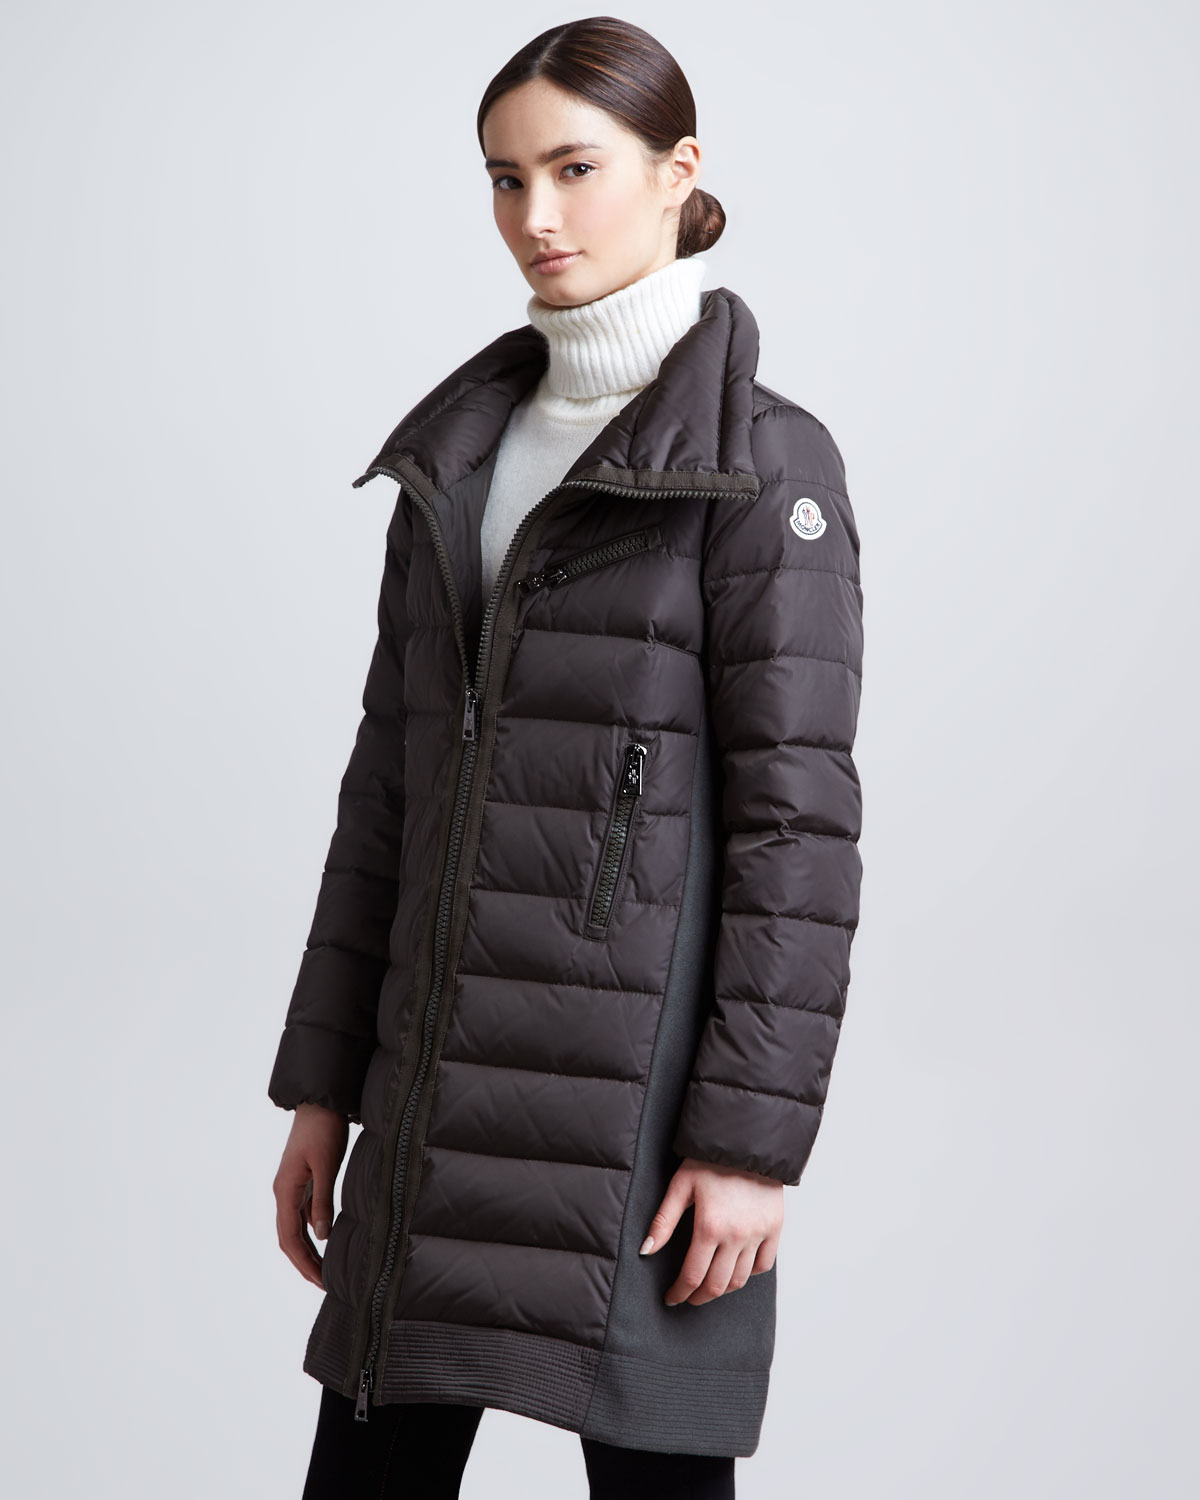 Moncler Long Puffer Coat with Knit Insets Olive in Black | Lyst